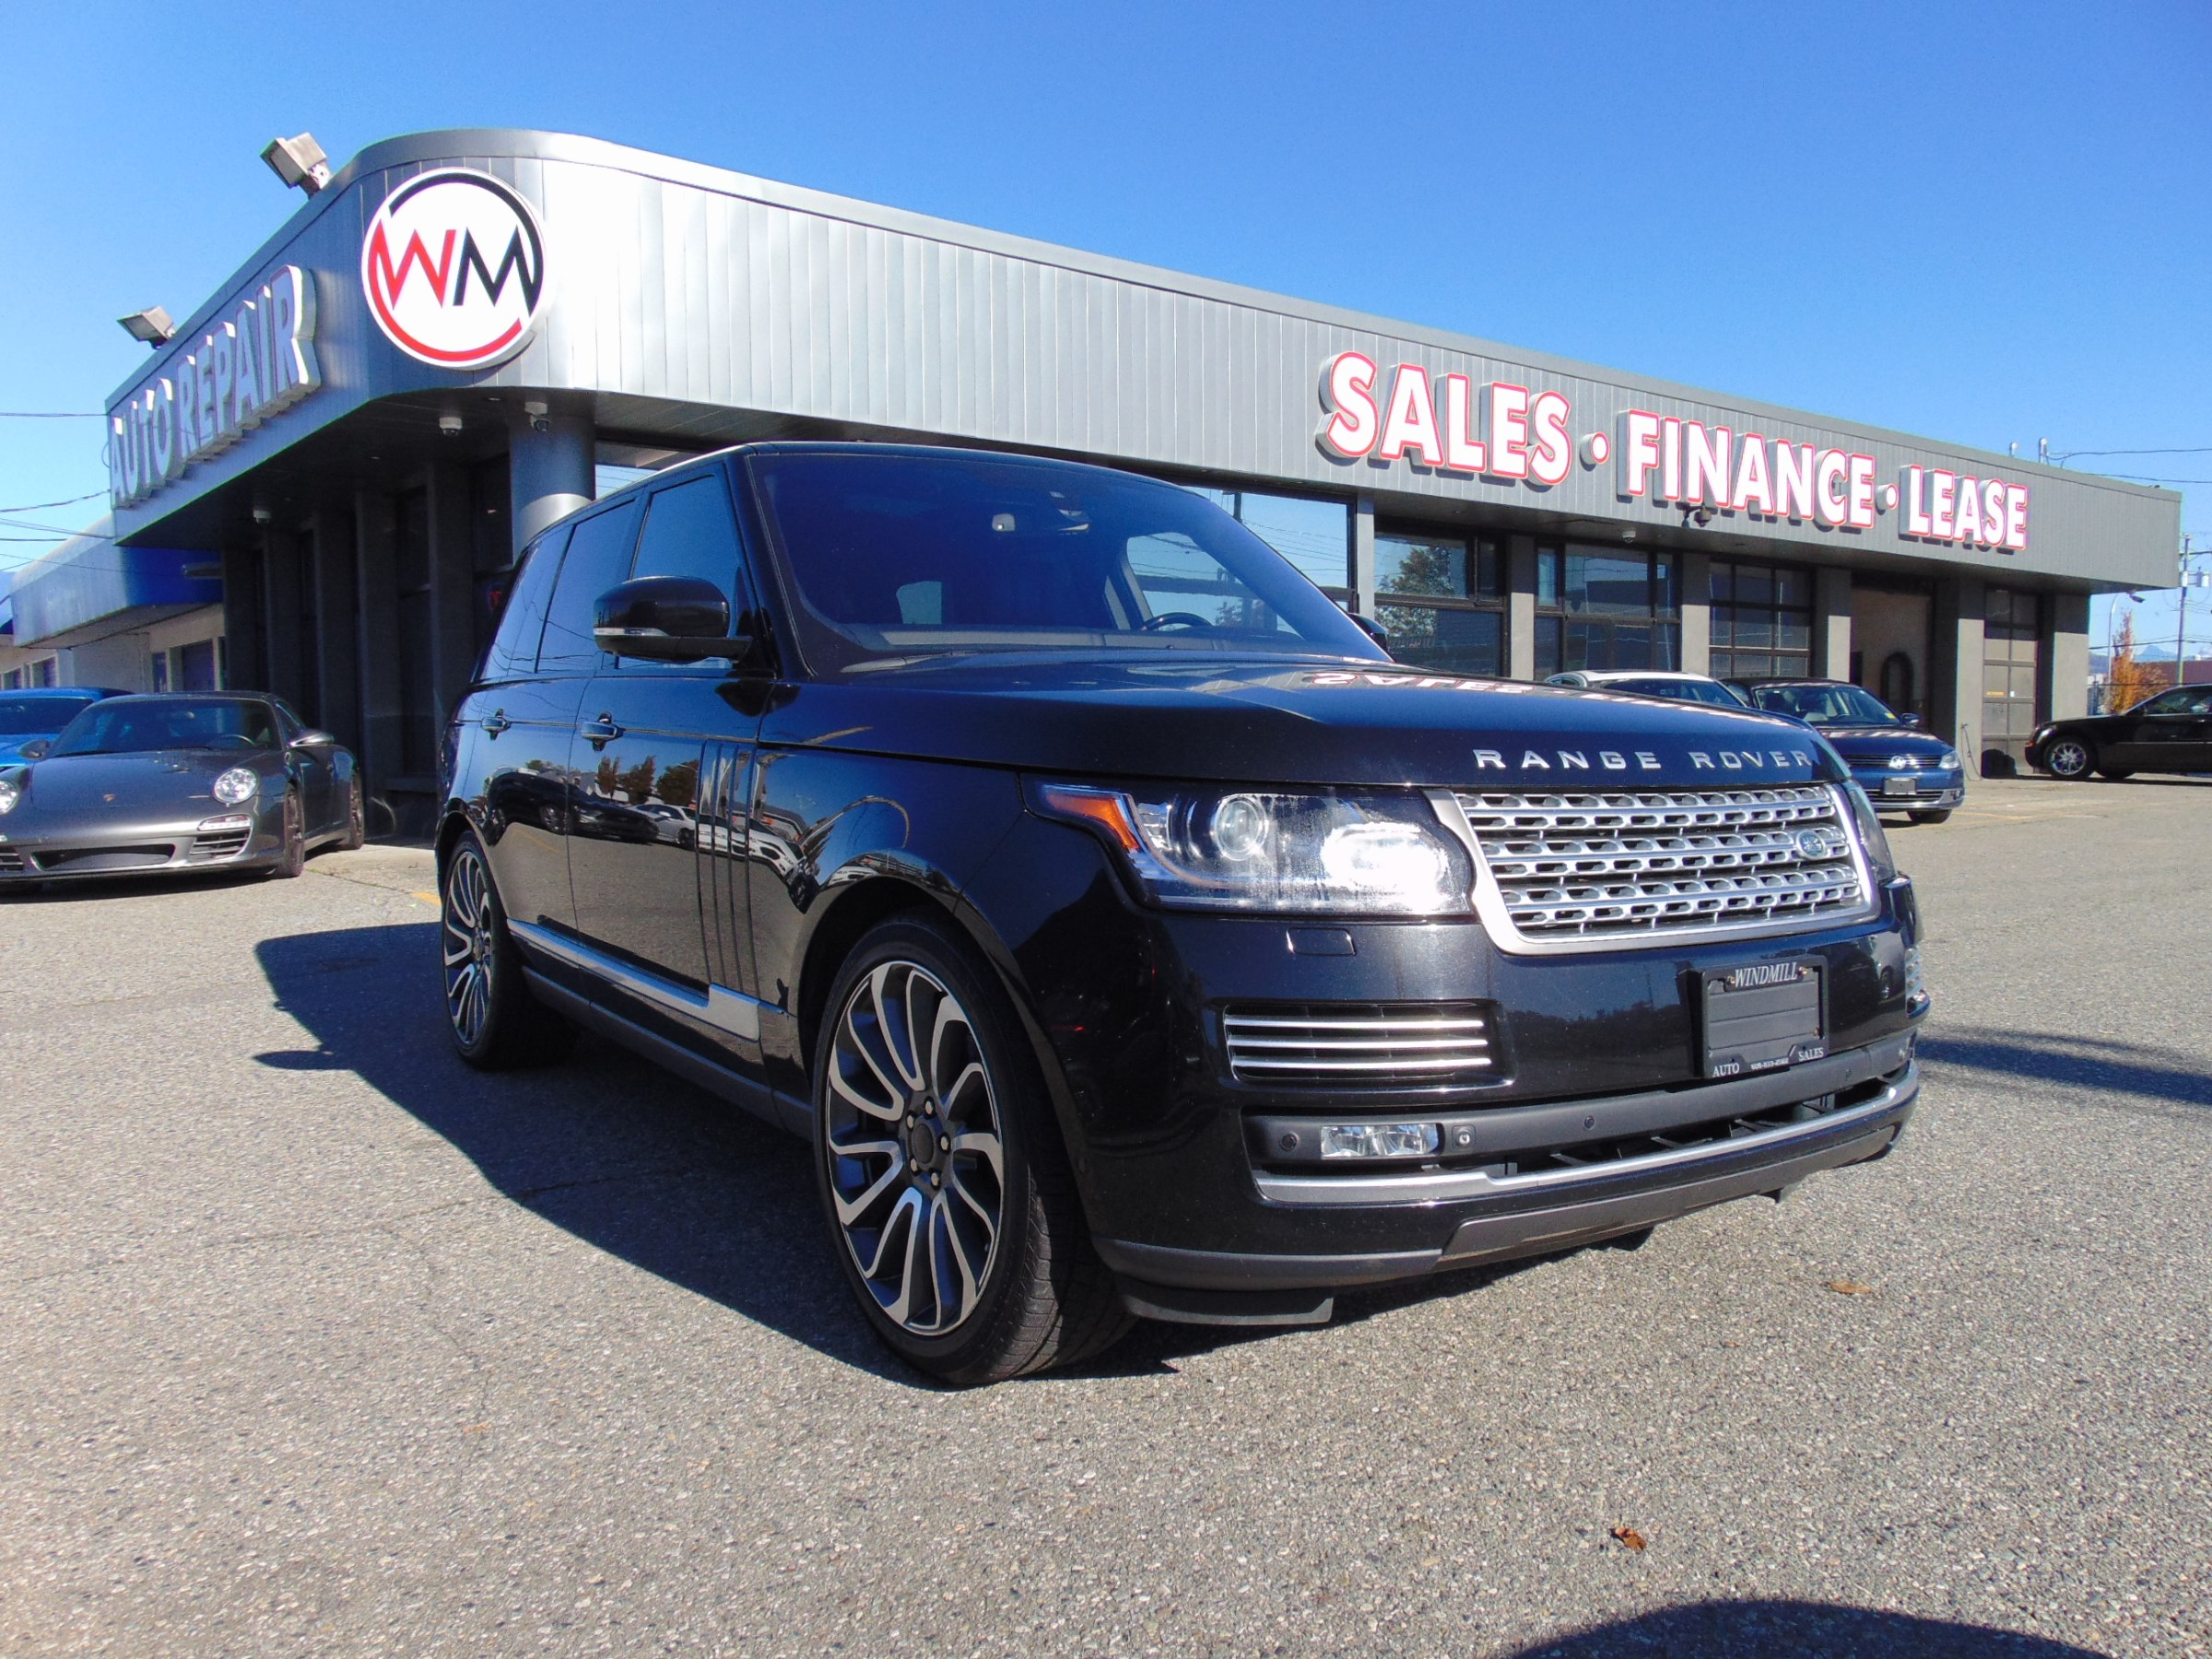 Used Land Rover For Sale Vancouver BC CarGurus